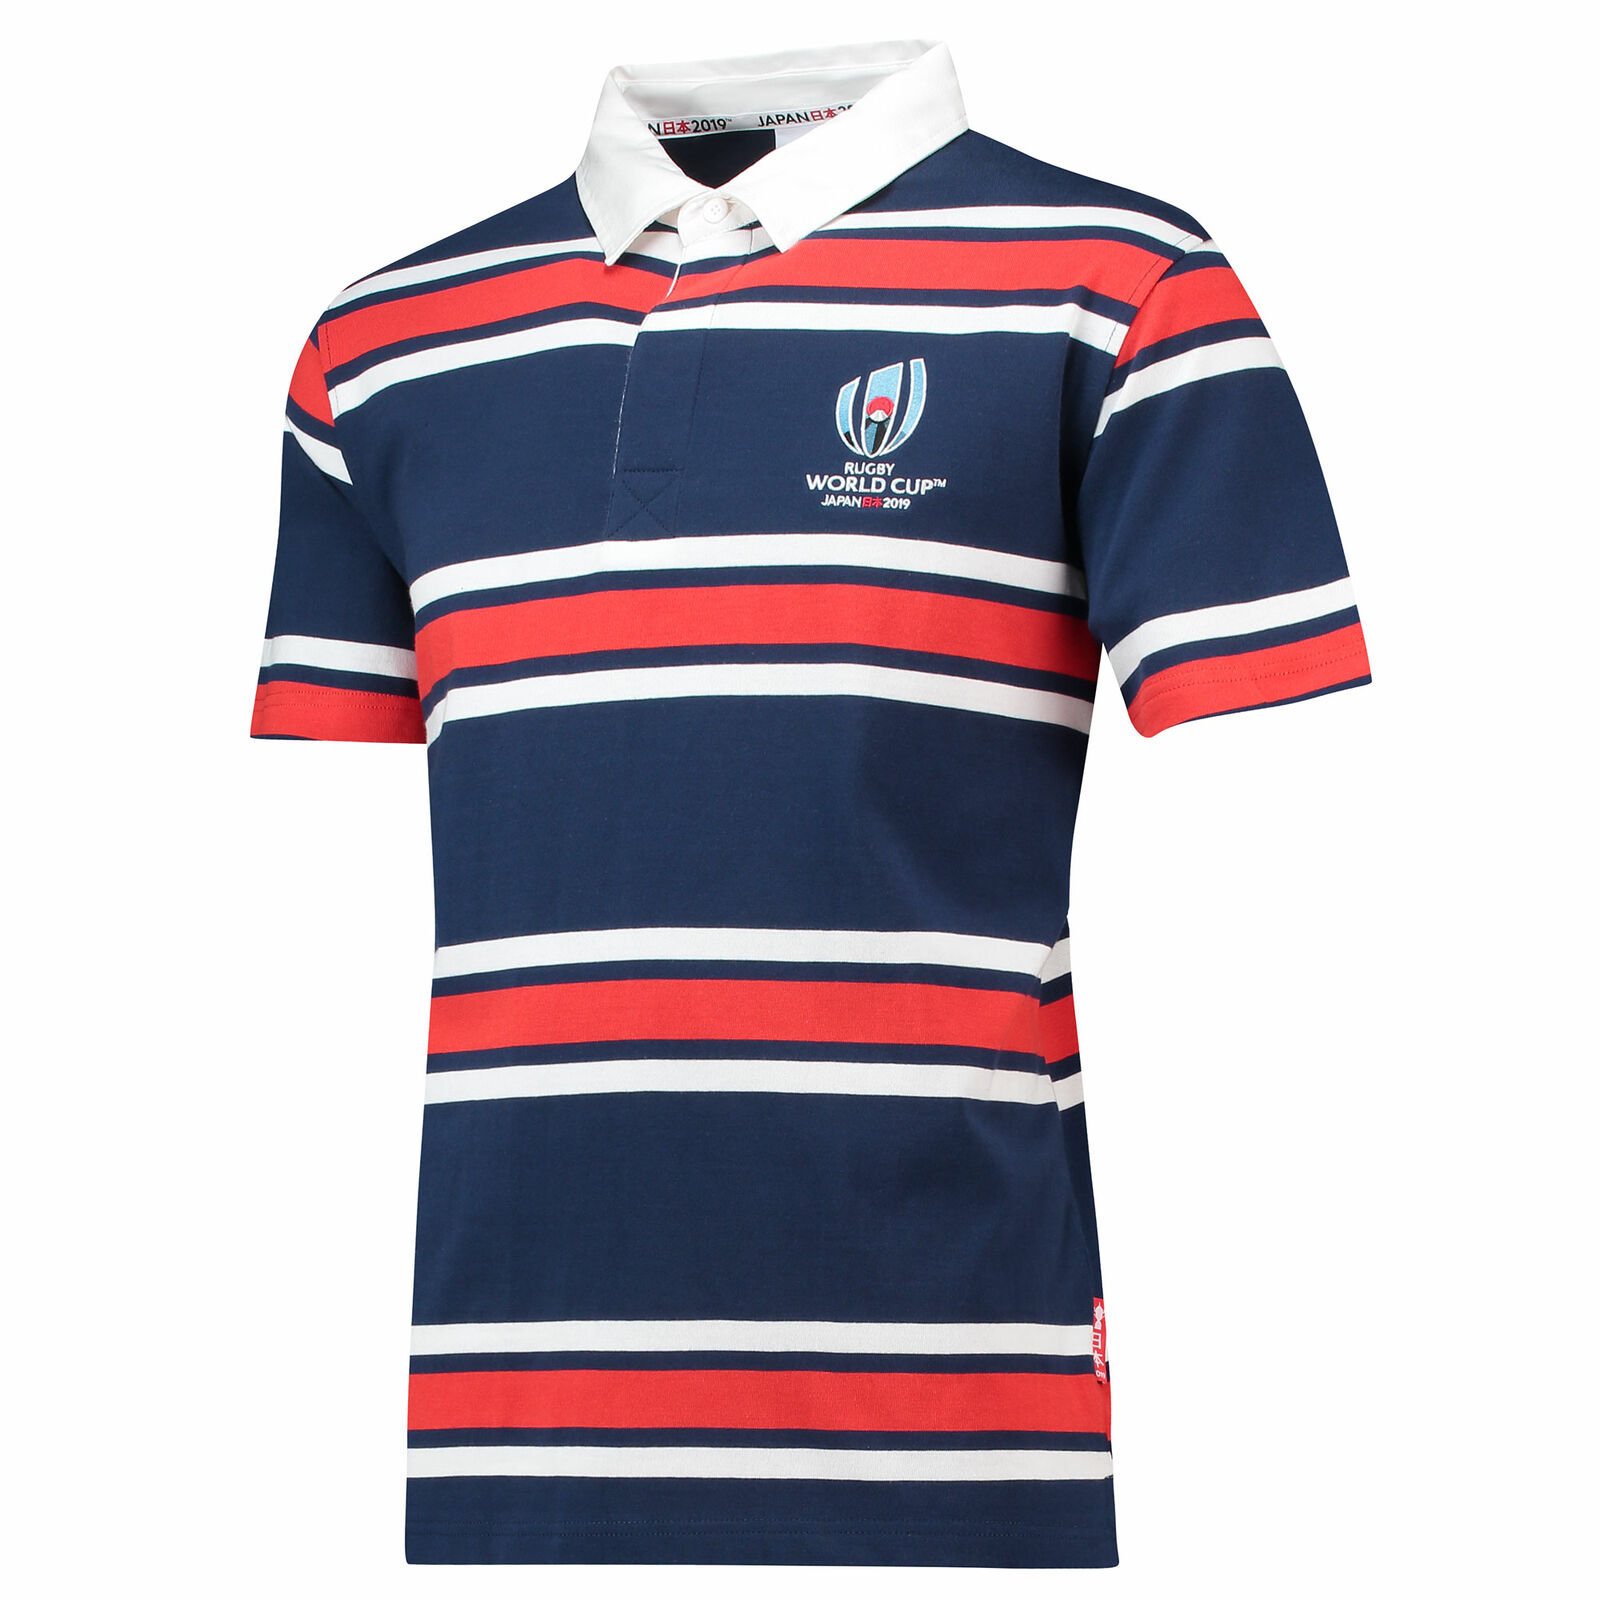 Rugby World Cup 2019 Striped Jersey Short Sleeved Red White Navy Mens Fanatics